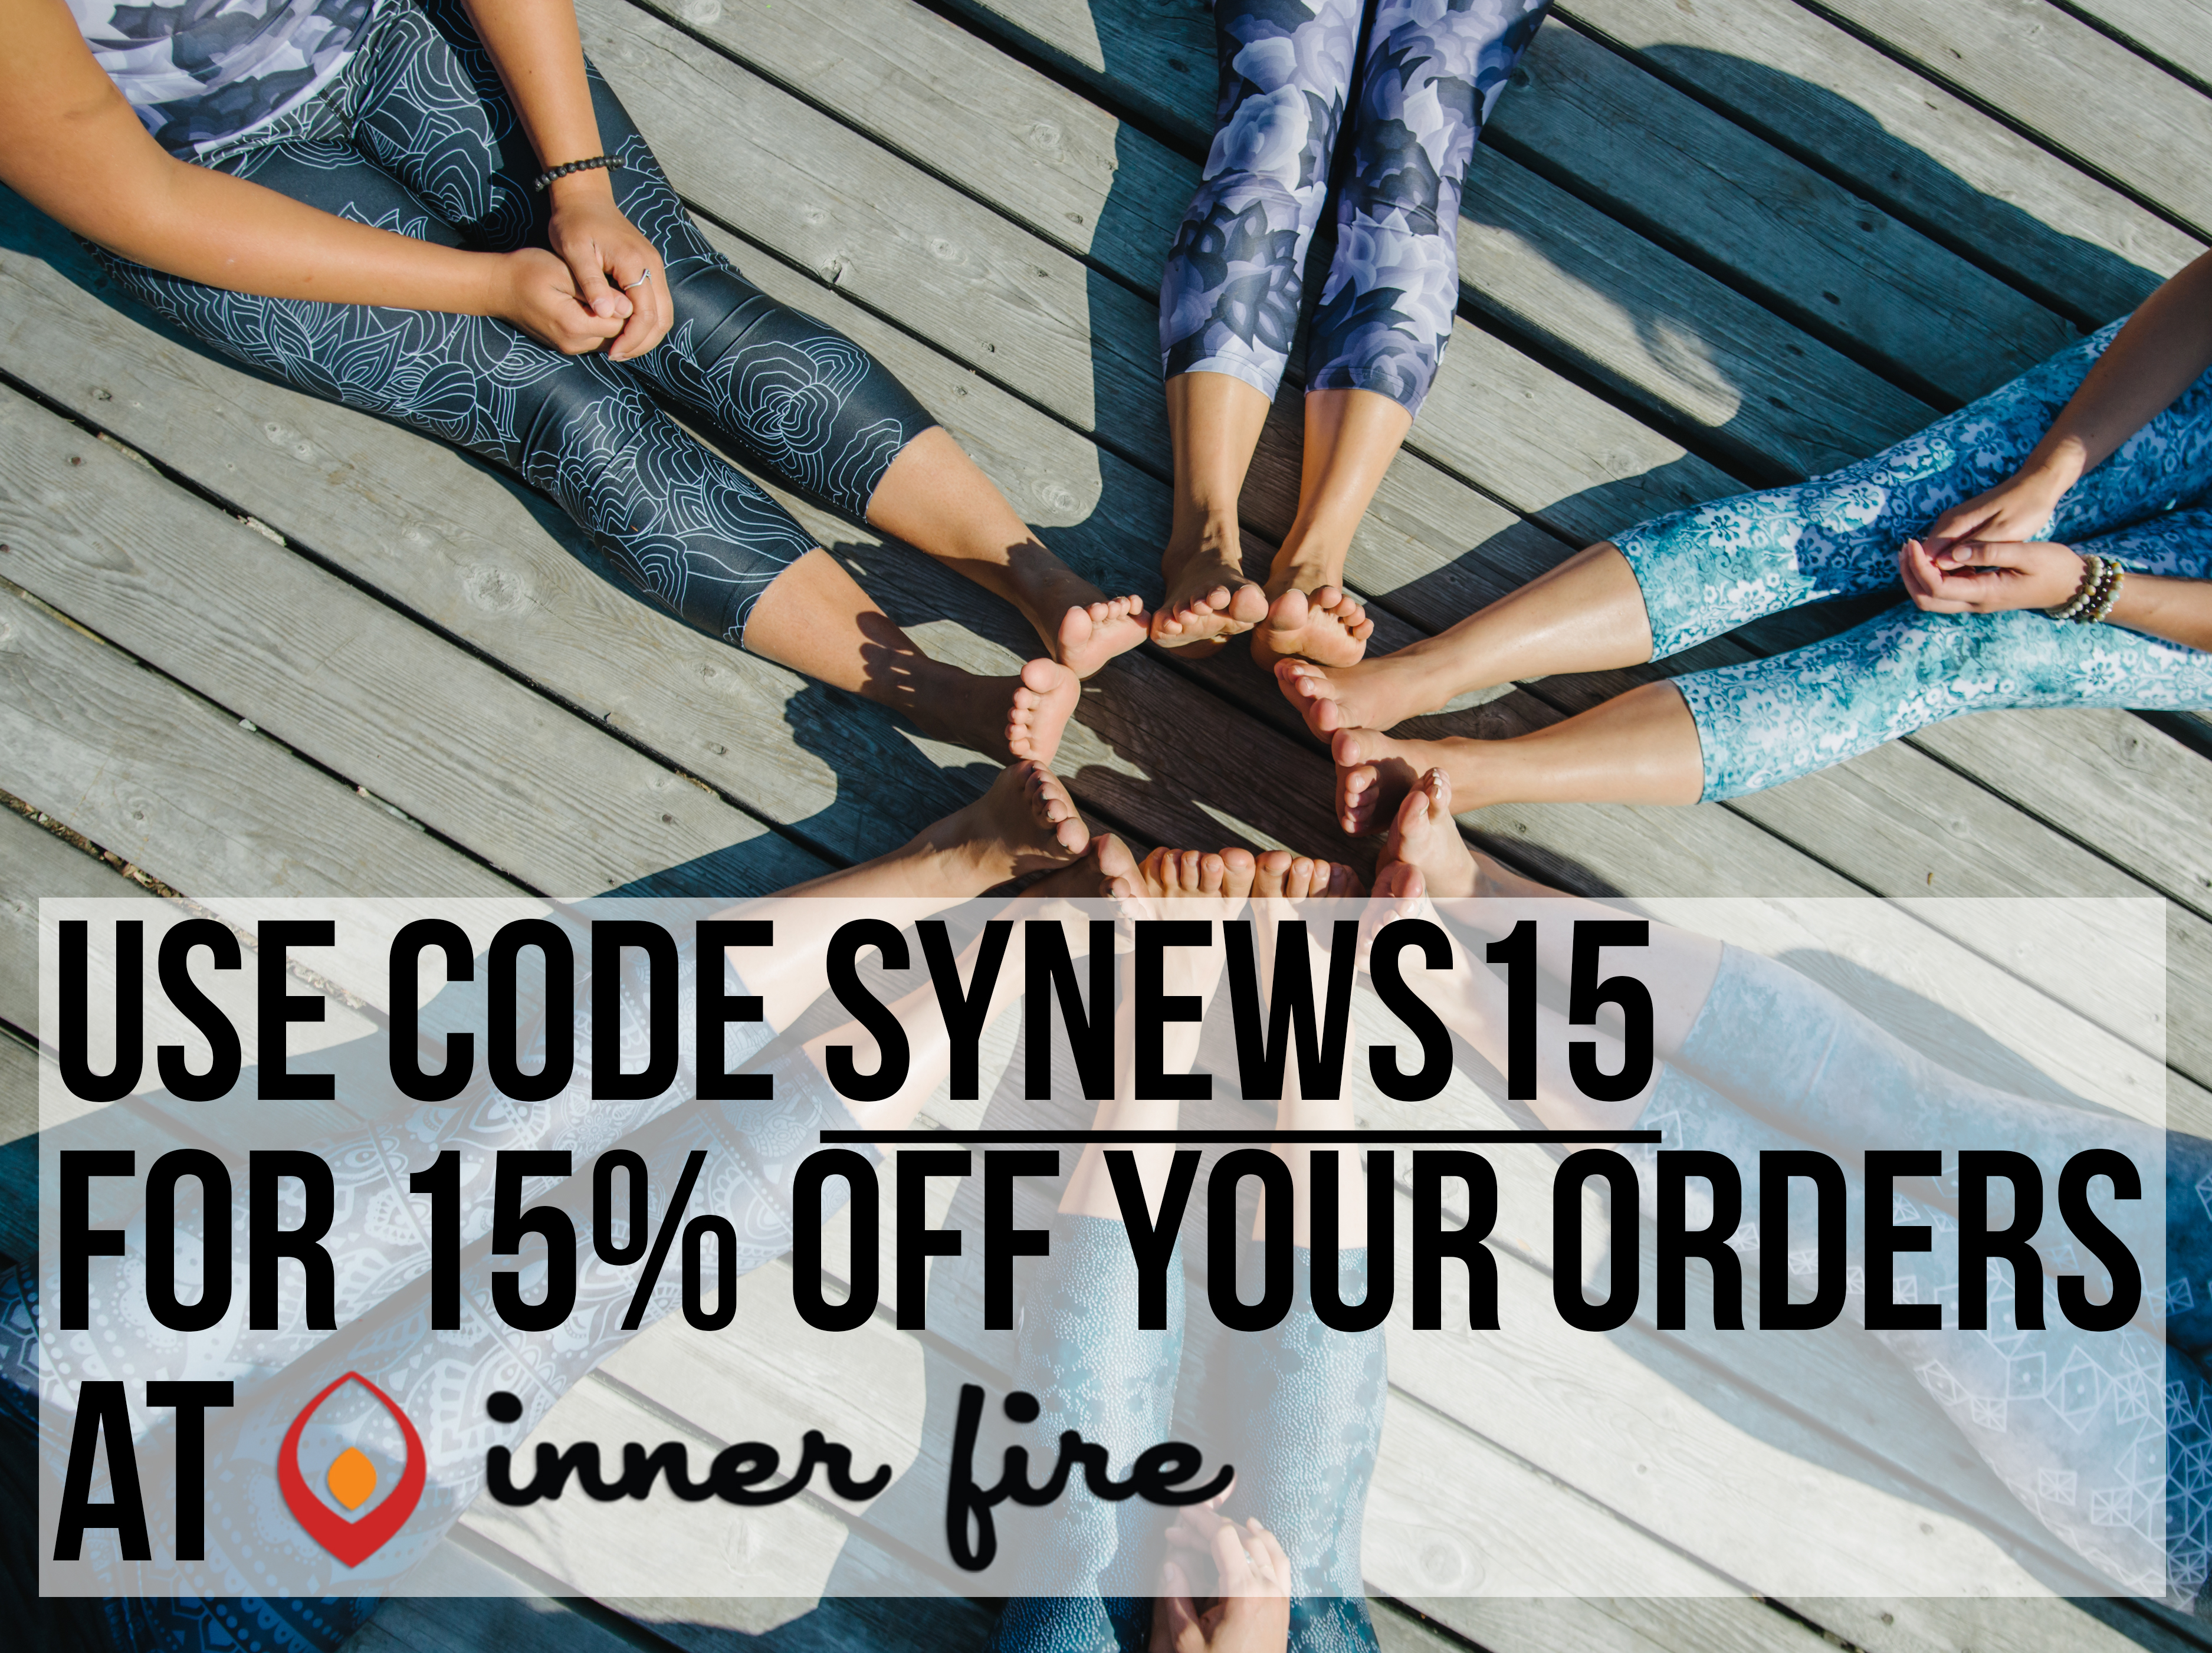 Use Inner Fire coupon code SYNEWS15 and save 15% off your orders